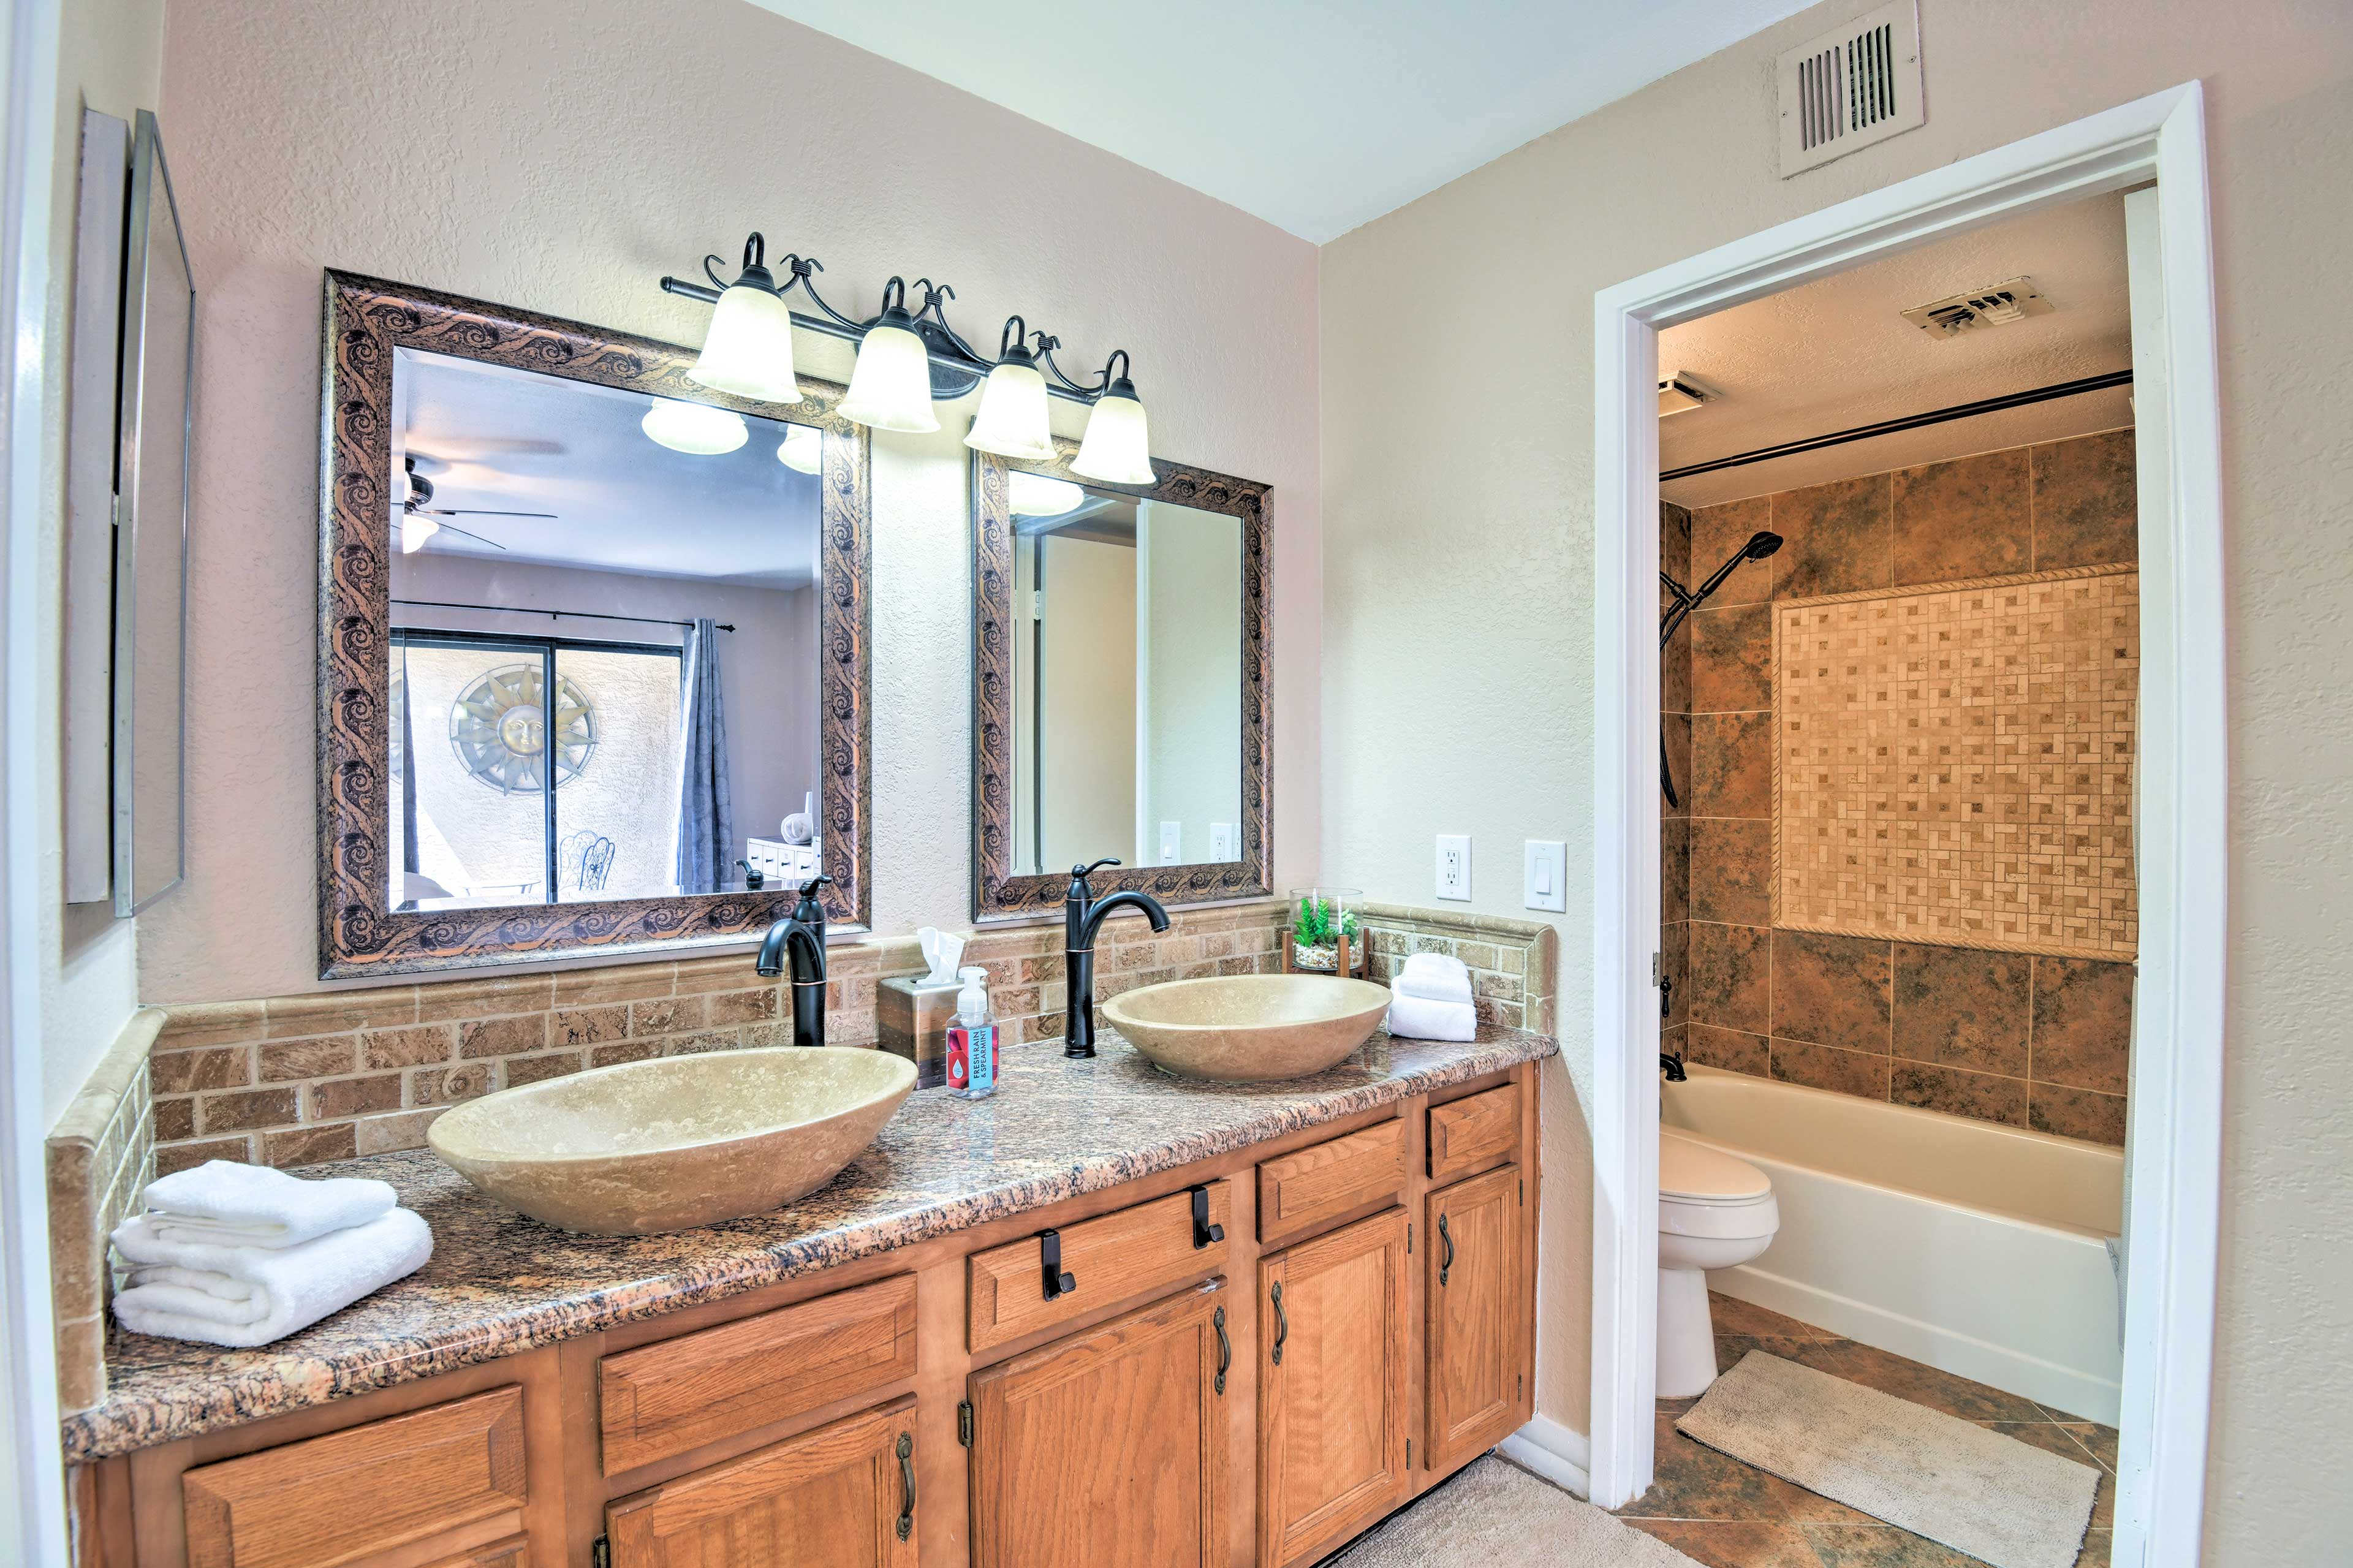 Enjoy the added luxury of an en-suite bathroom with a shower/tub combo.